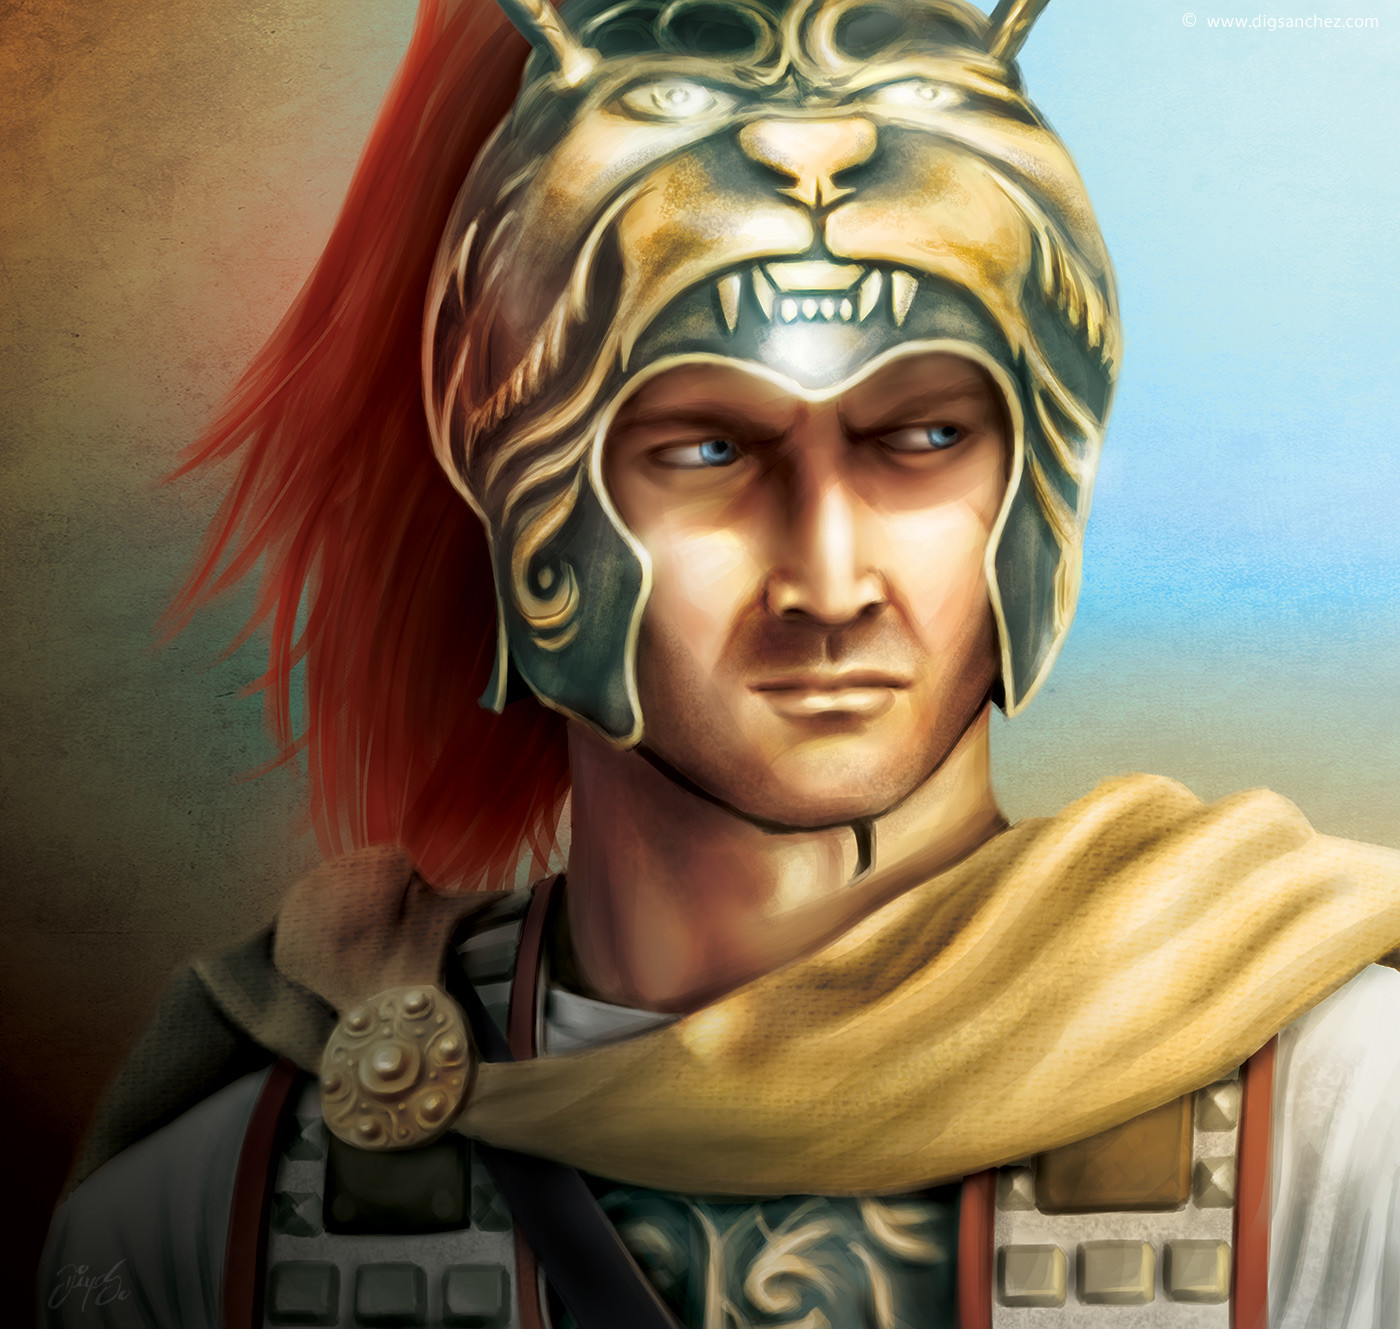 Card character - Alexander the Great